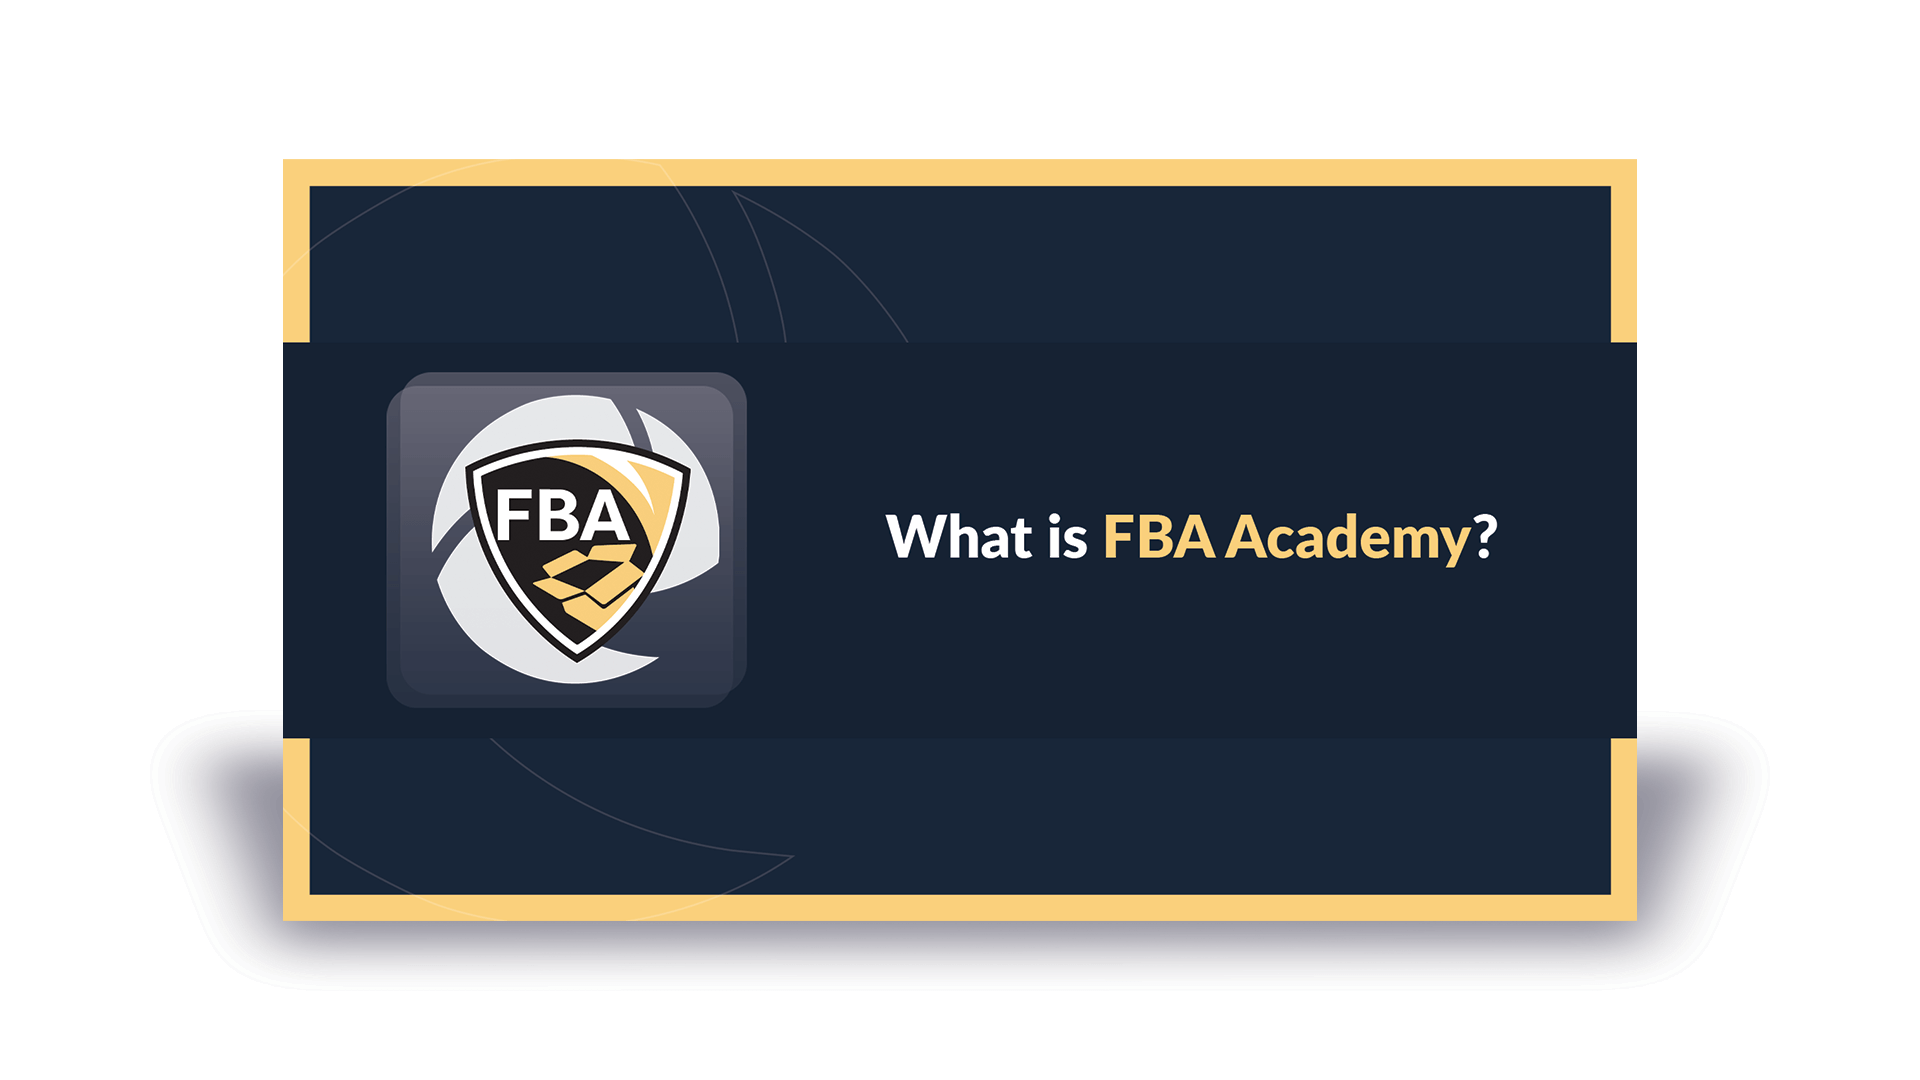 What is FBA Academy?